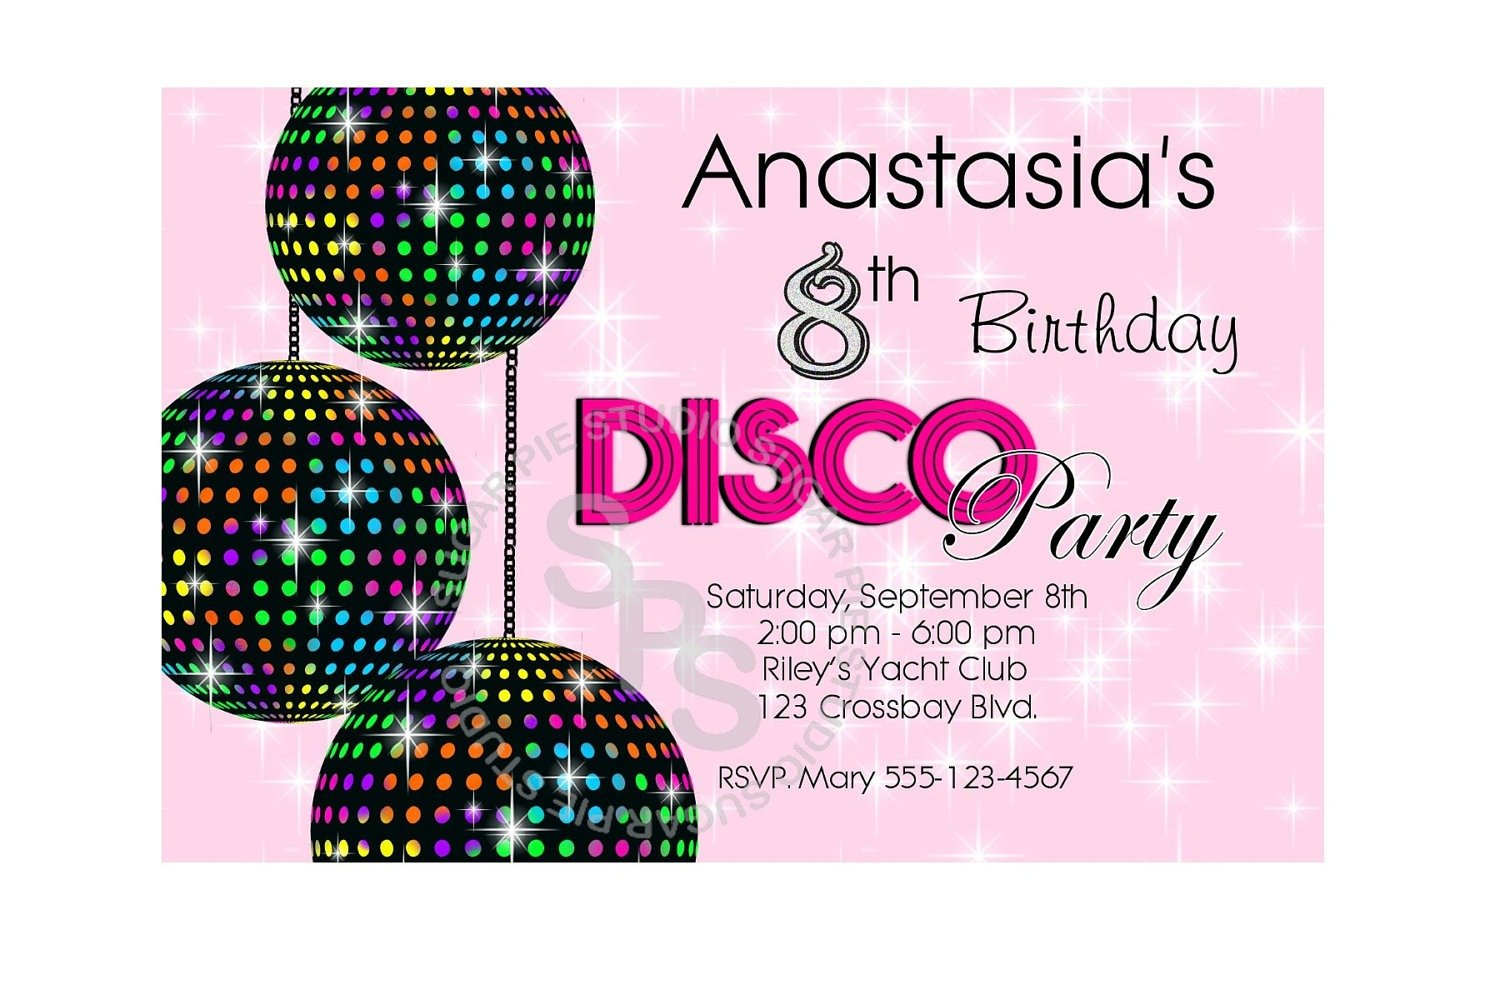 Free Disco Party In Stunning Disco Party Invites Printable